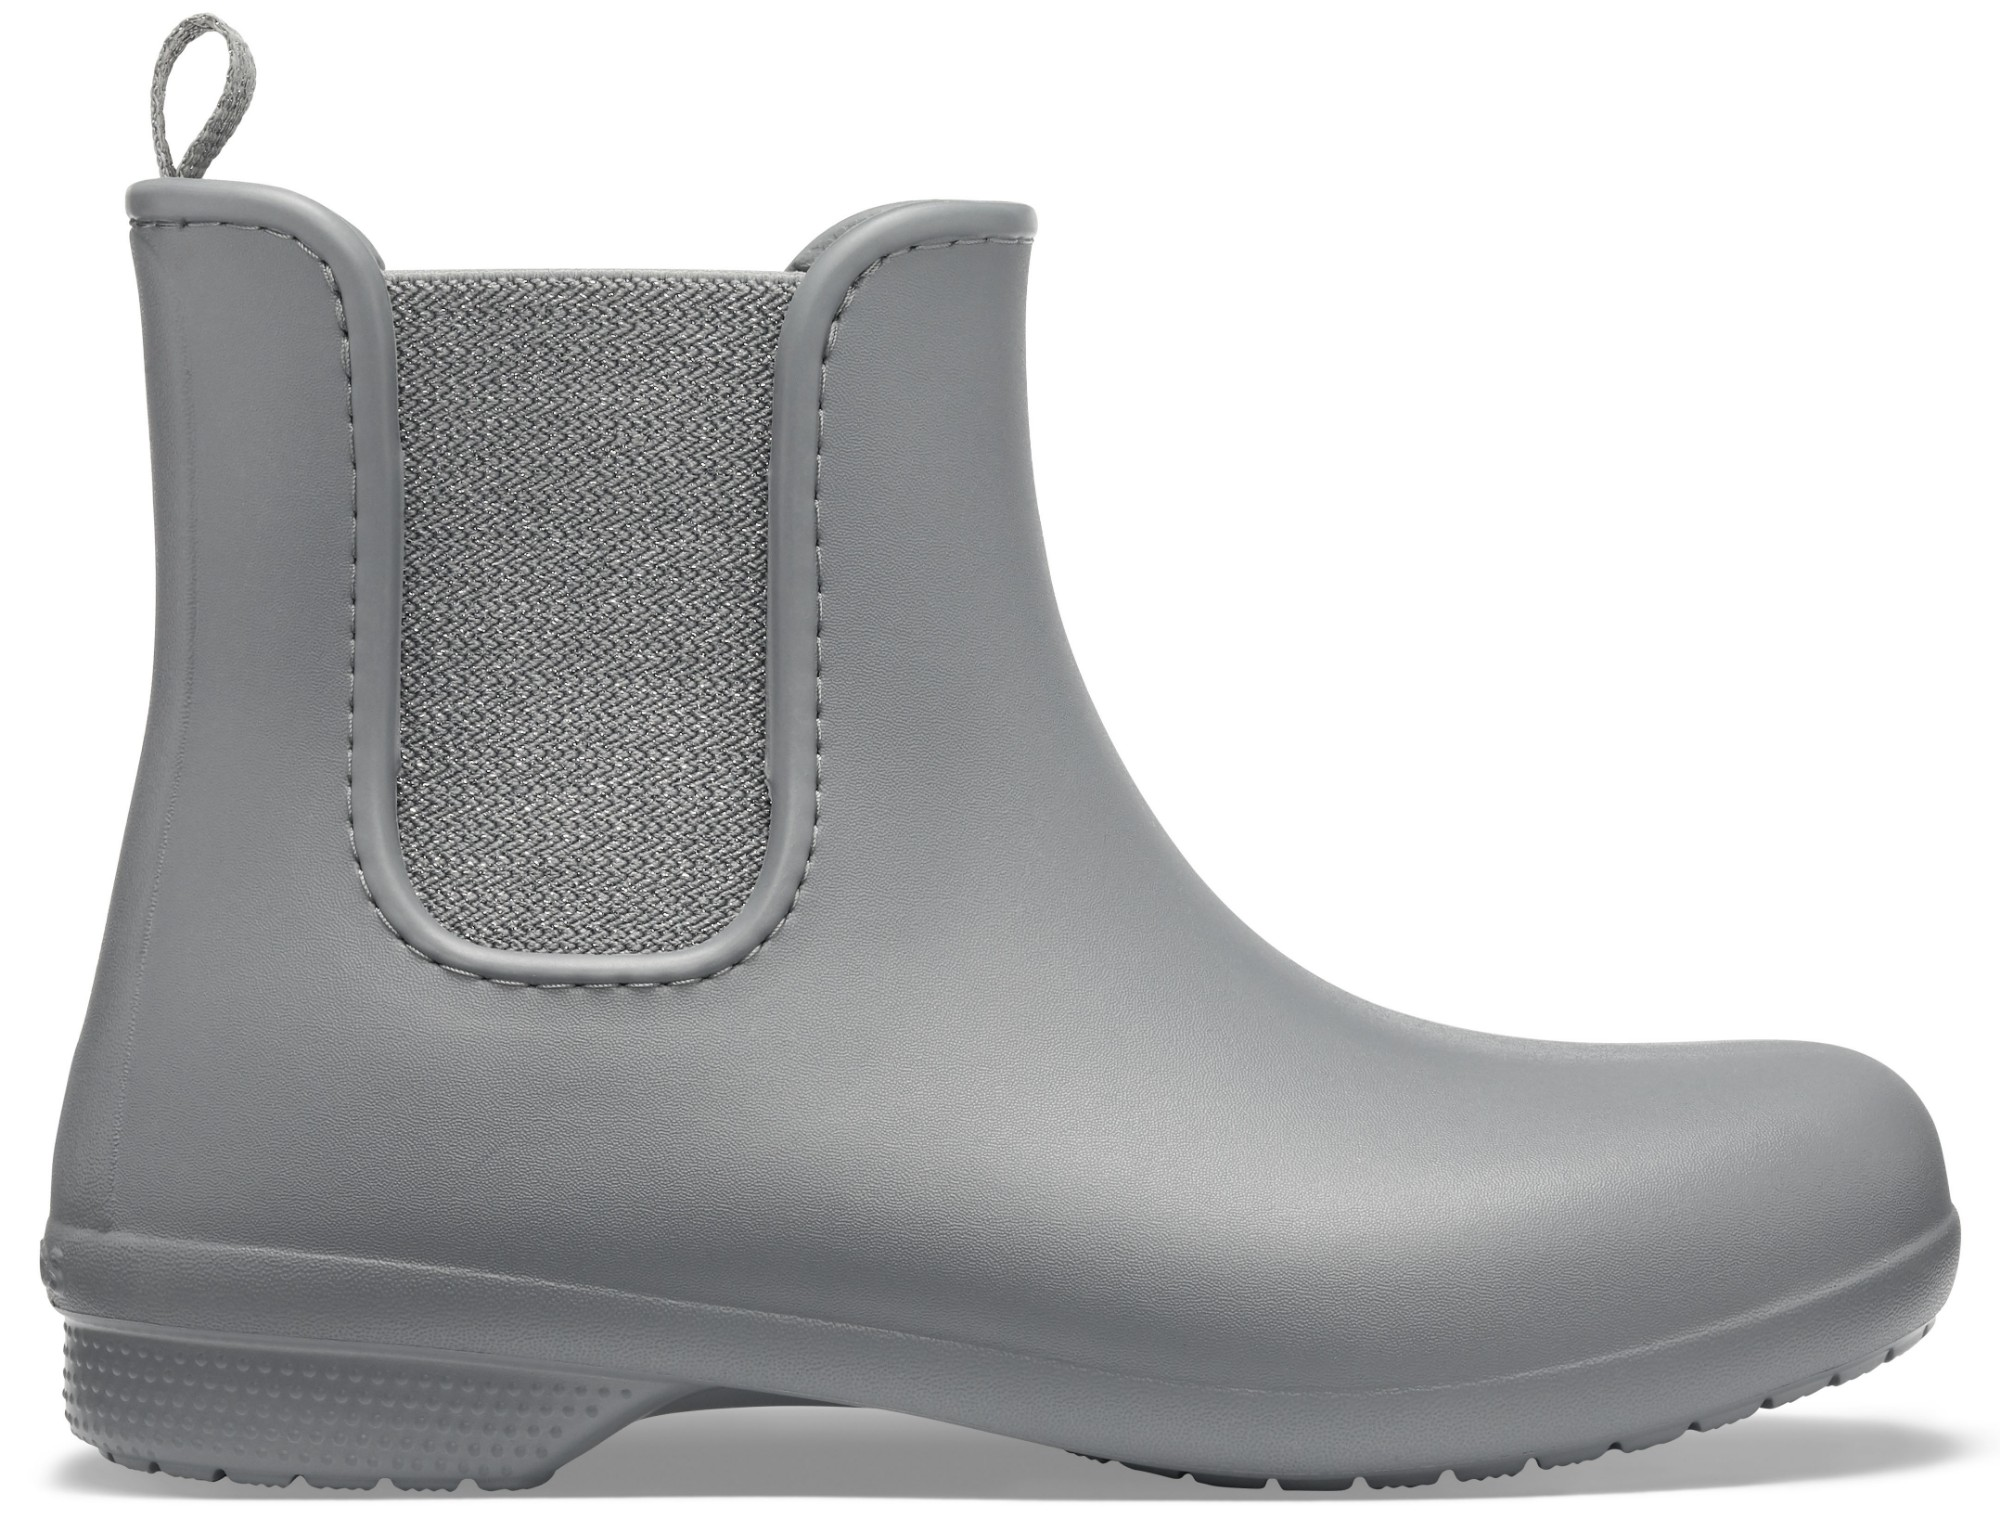 Crocs™ Freesail Mt Chelsea Boot Women's Metallic Charcoal 41